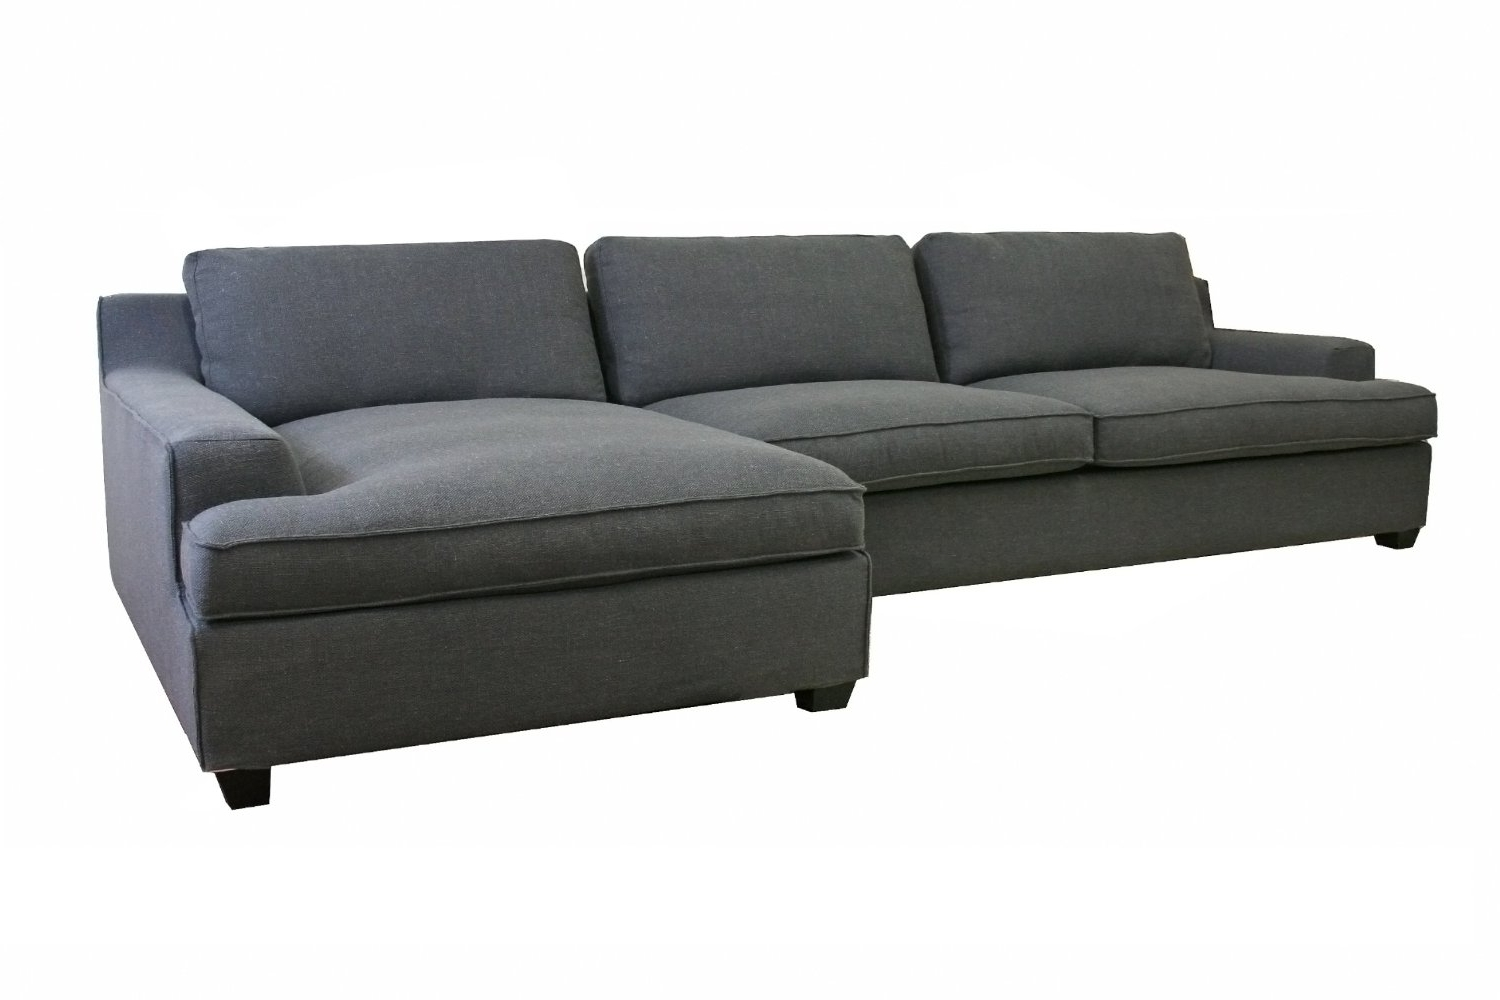 Recent Awesome Couch With Chaise Lounge 81 On Sofas And Couches Ideas With Couches With Chaise (View 13 of 15)